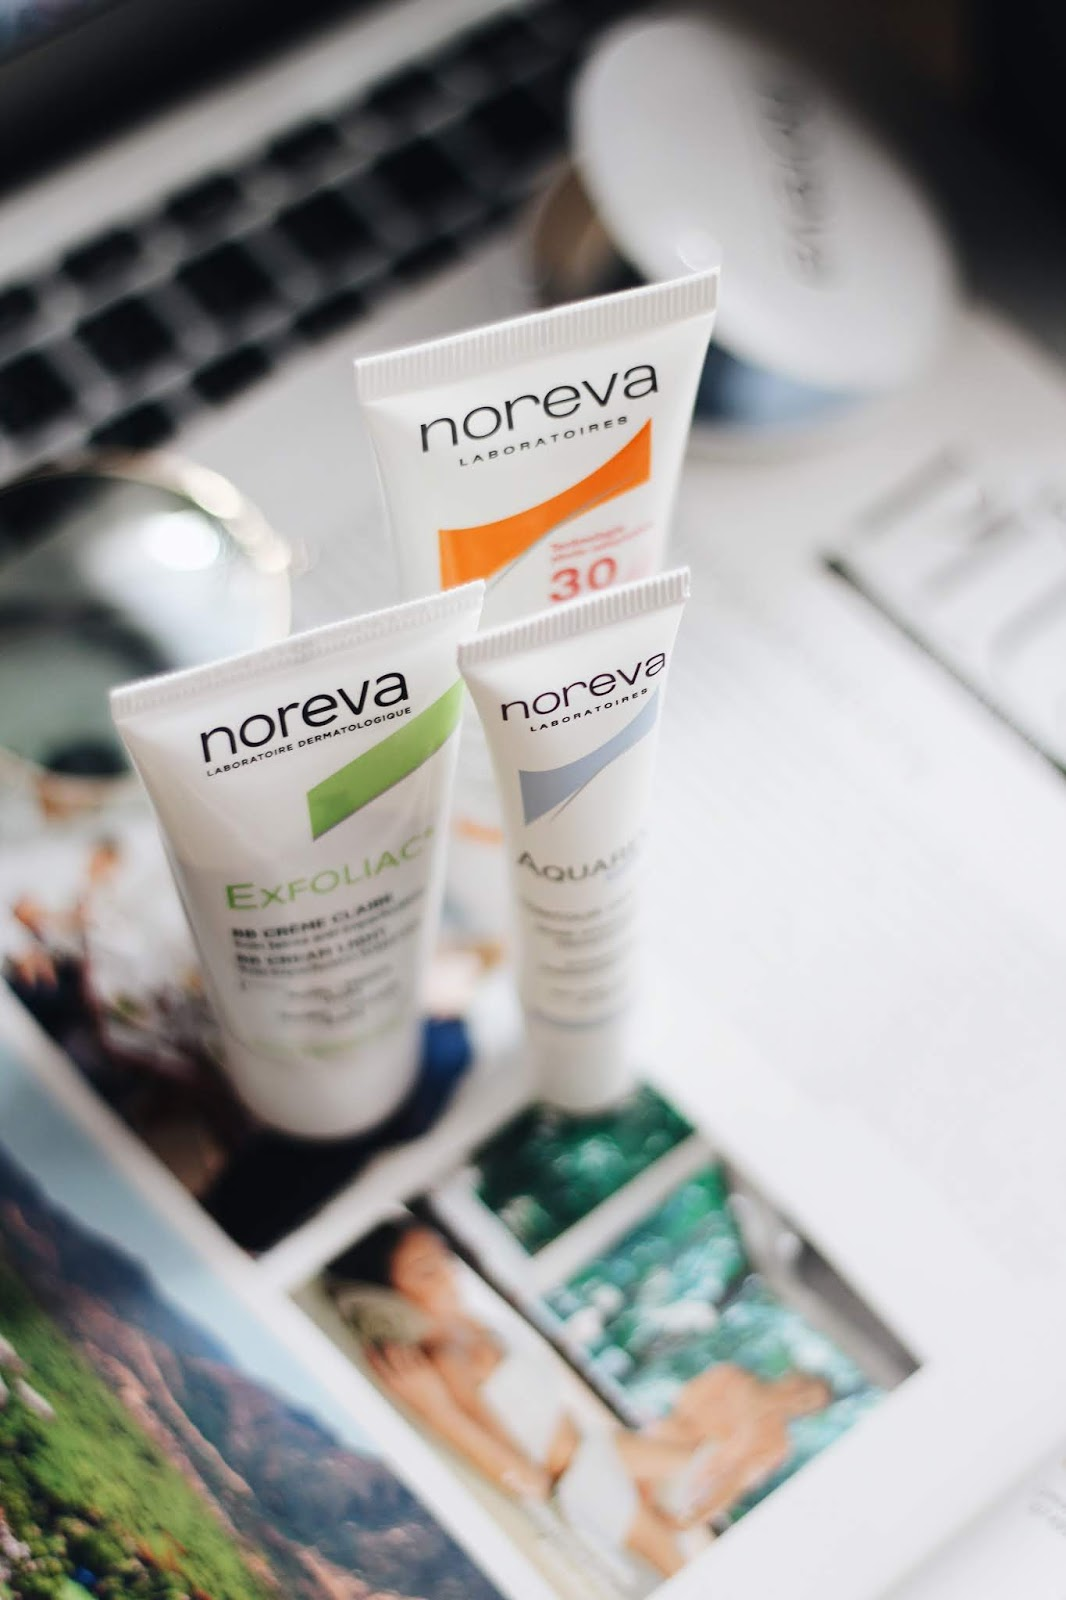 Новинки марки Noreva. Noresun Gradual UV Fluid SPF 30, Noreva Aquareva Contour des Yeux Hydrating Energizing Care, Exfoliac BB Cream Light.